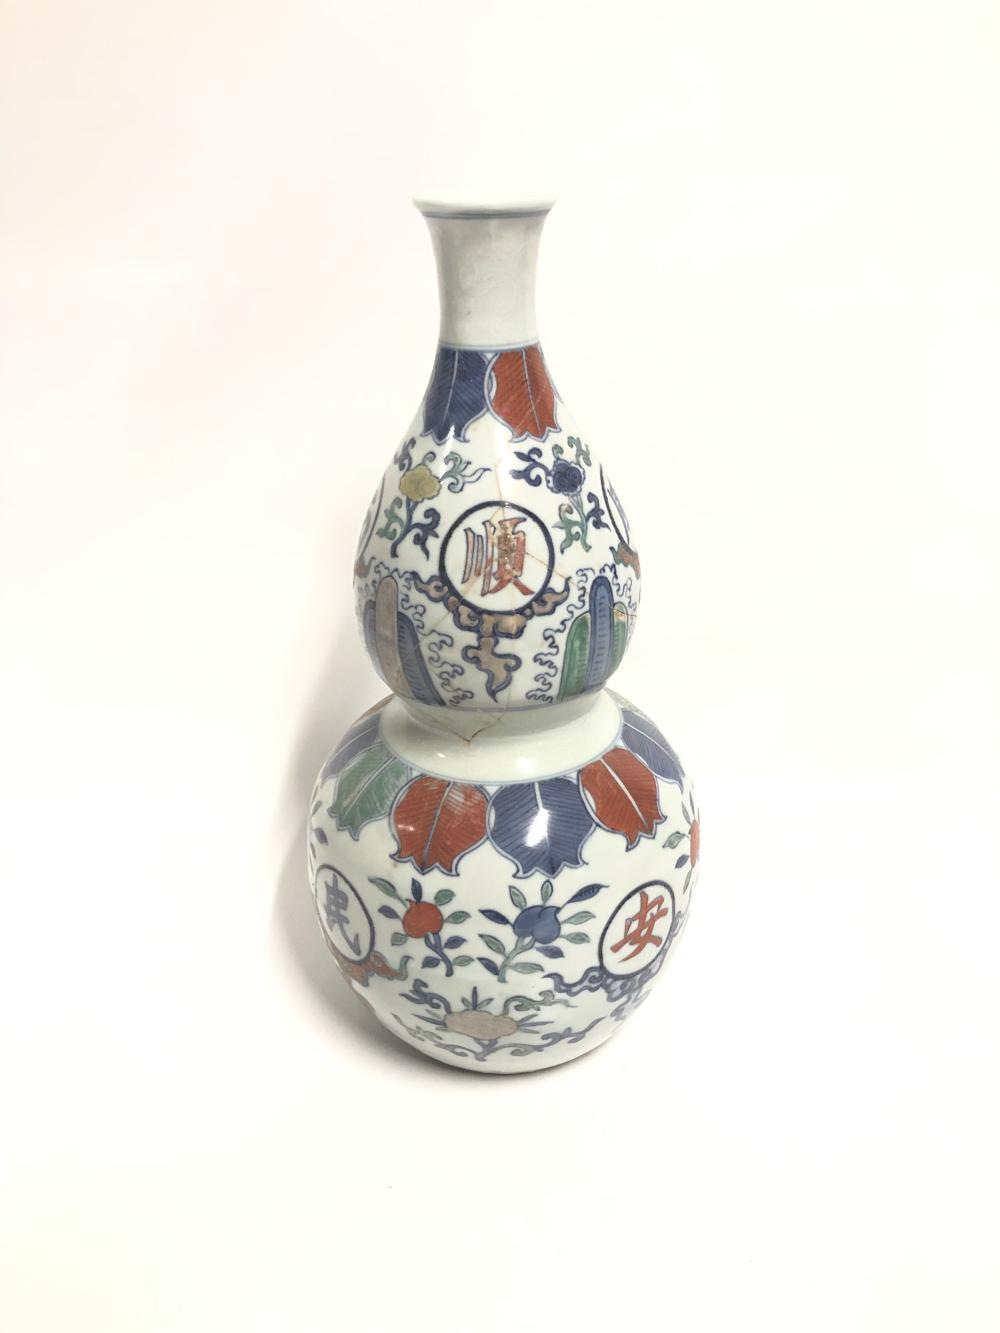 Jiajing Marked Gourd Vase (Cracked) H: 45cm